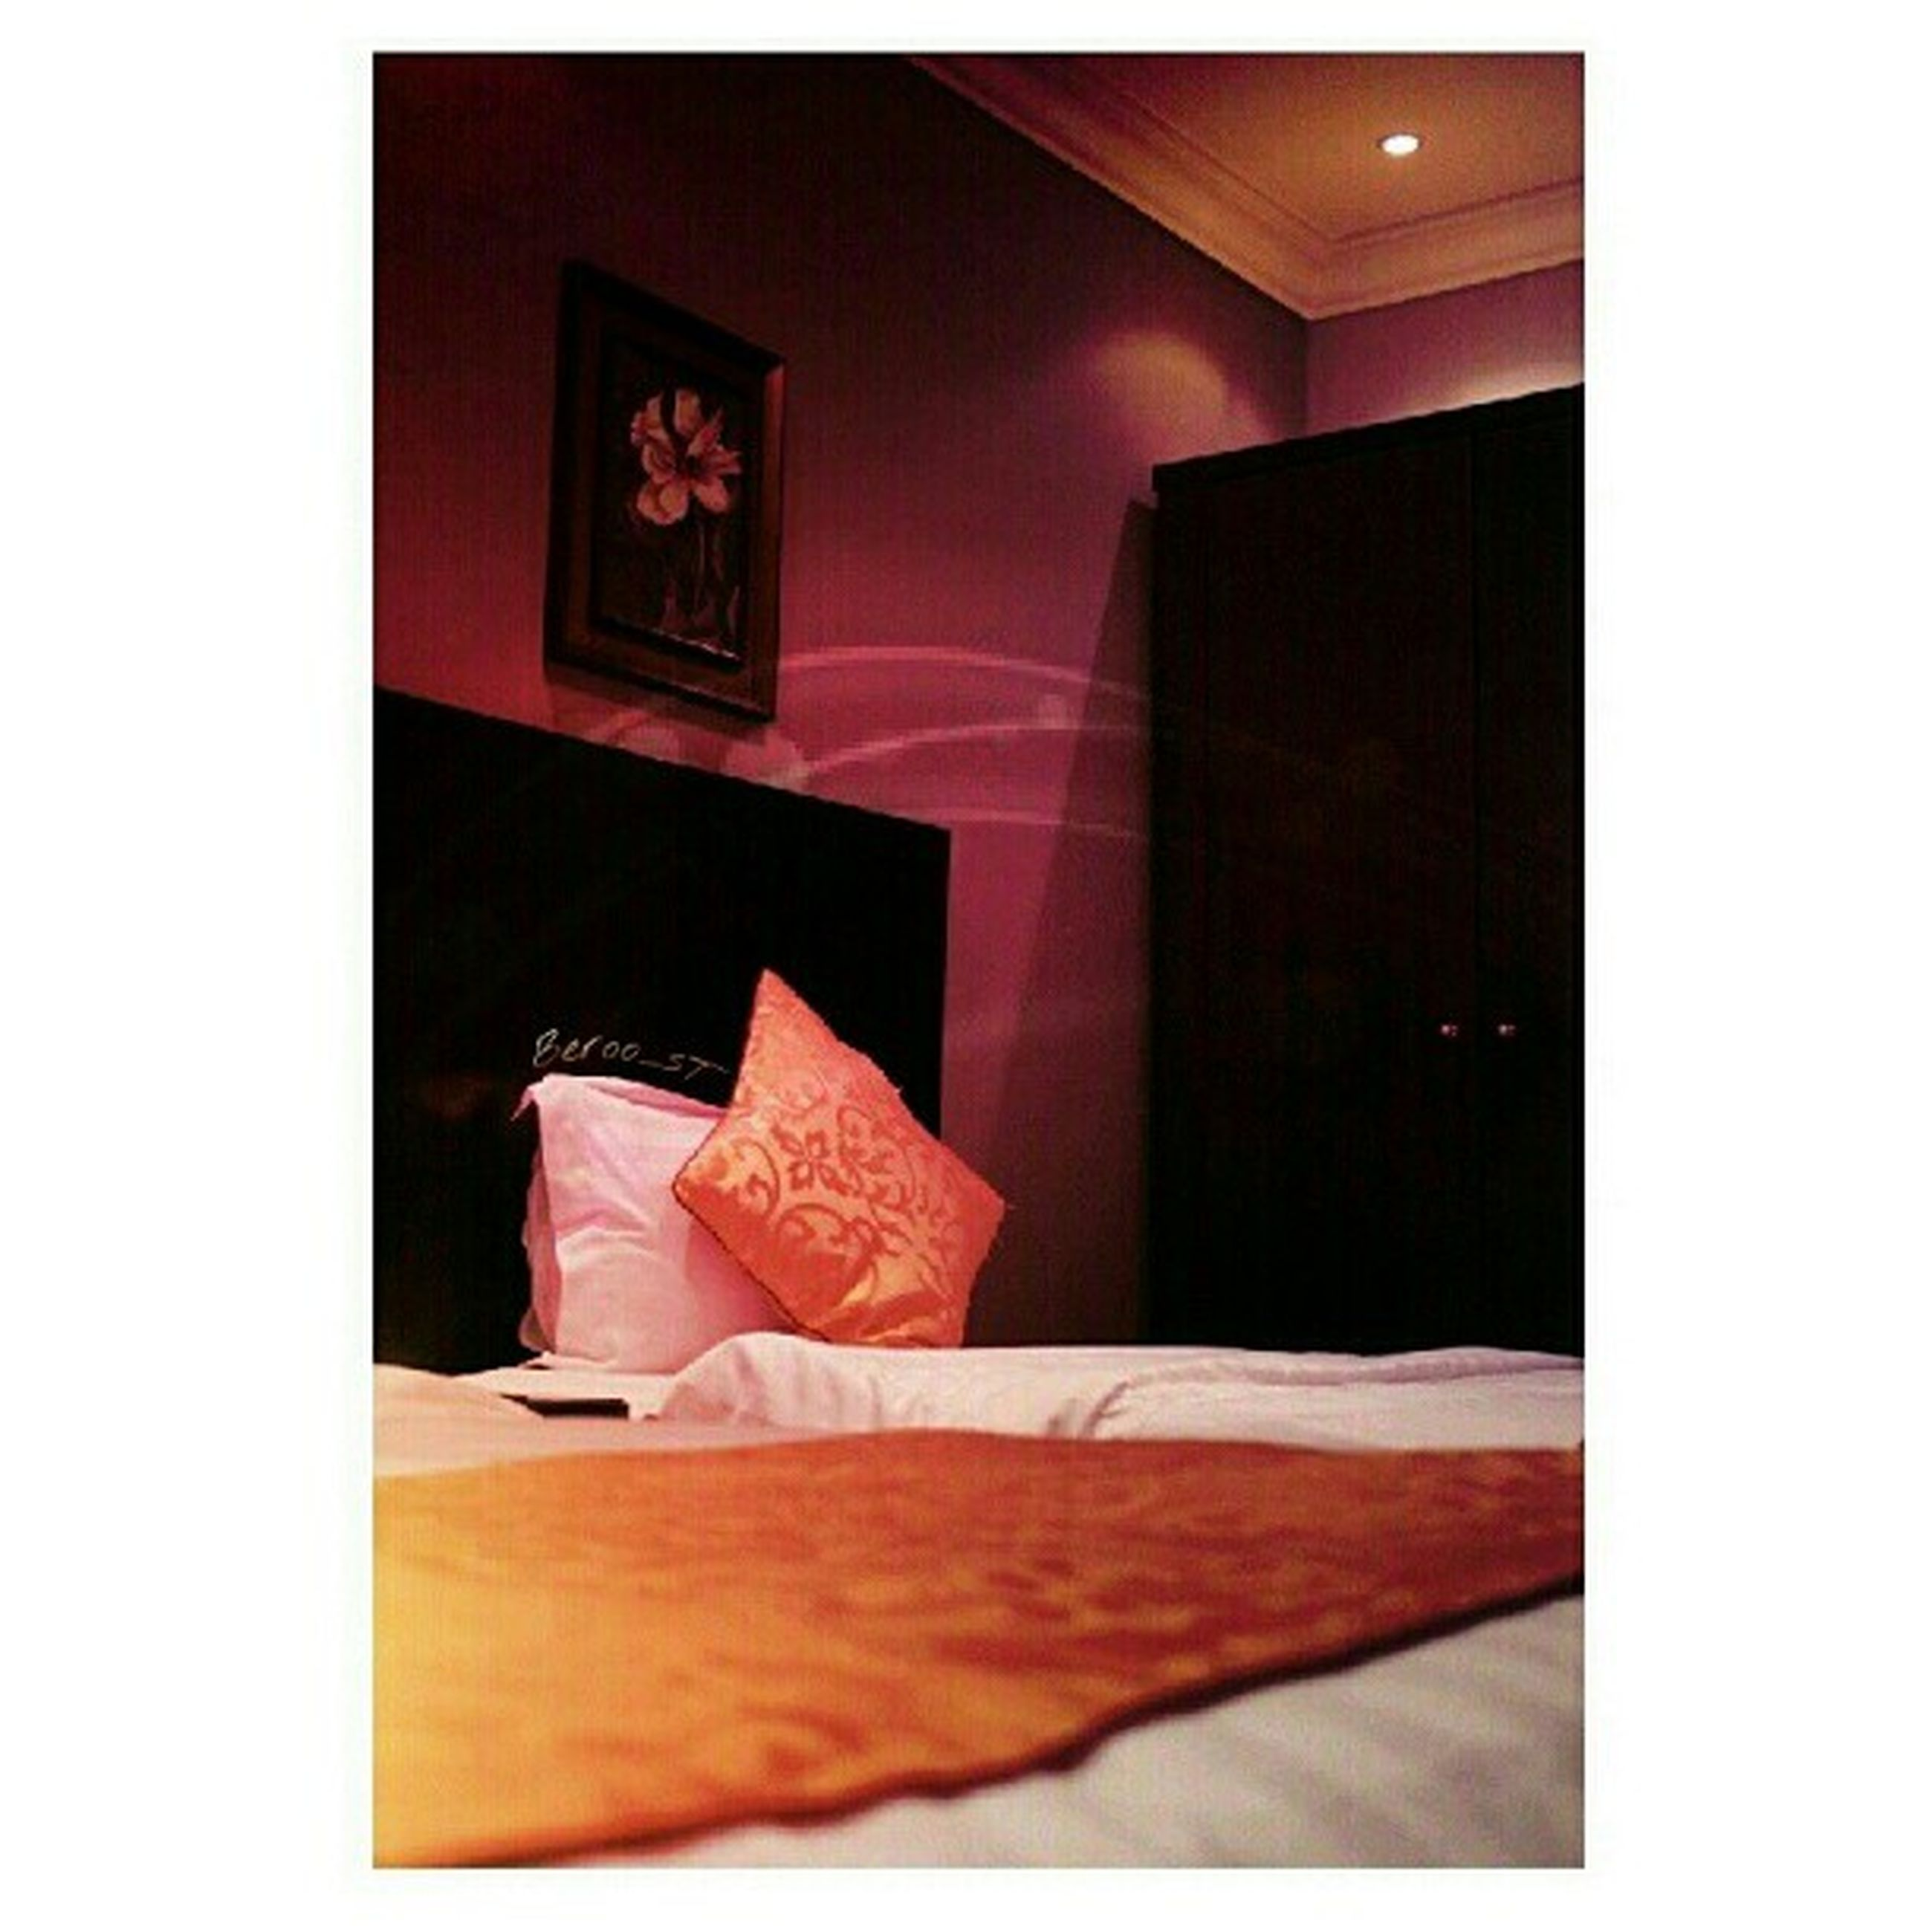 indoors, home interior, table, absence, empty, transfer print, auto post production filter, domestic room, chair, book, house, room, picture frame, illuminated, open, furniture, wood - material, bed, bedroom, no people